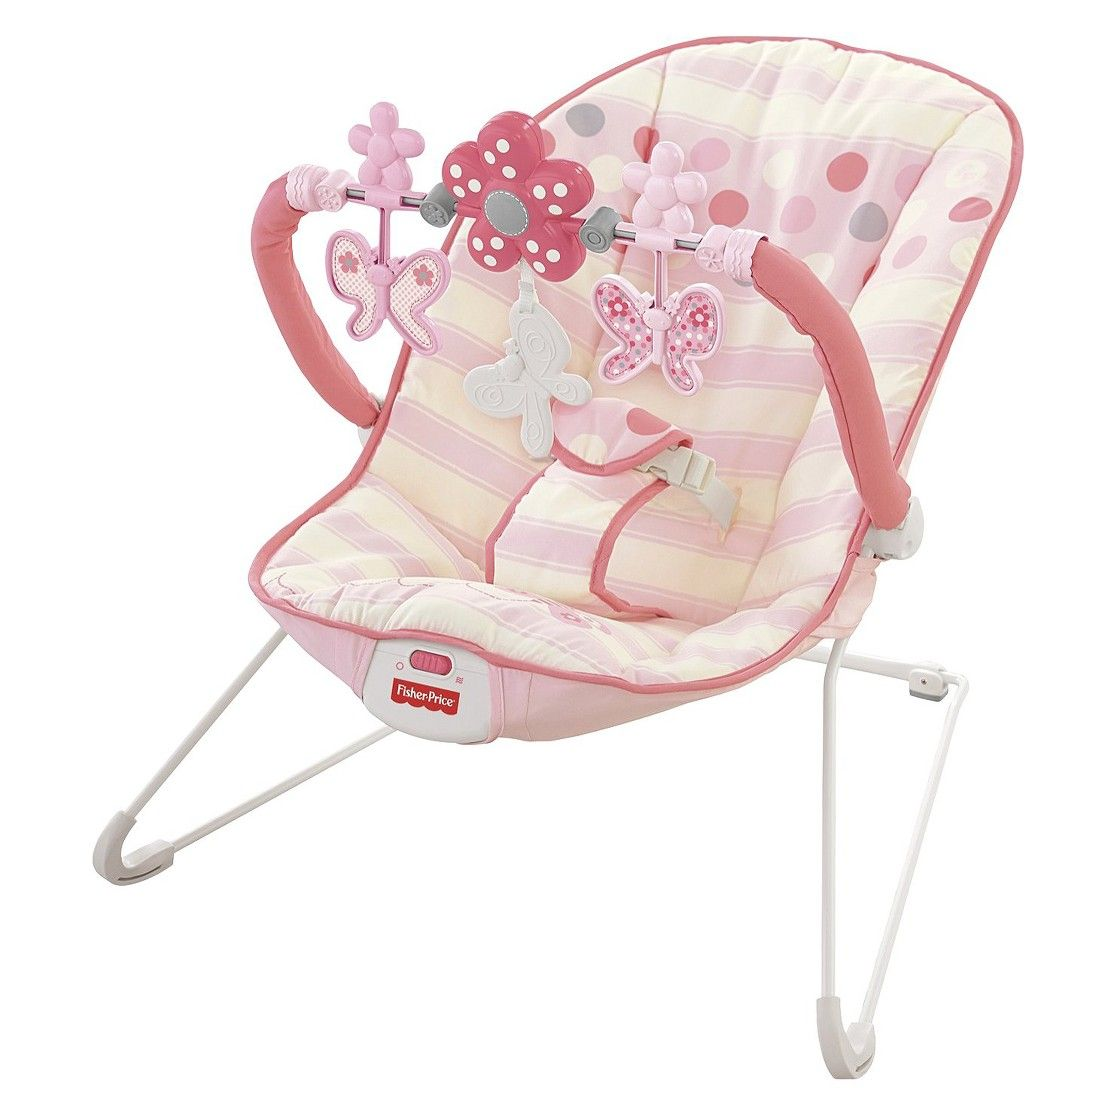 9b2312c96624e Fisher-Price Bouncer - Pink Butterfly | baby items needed | Best ...